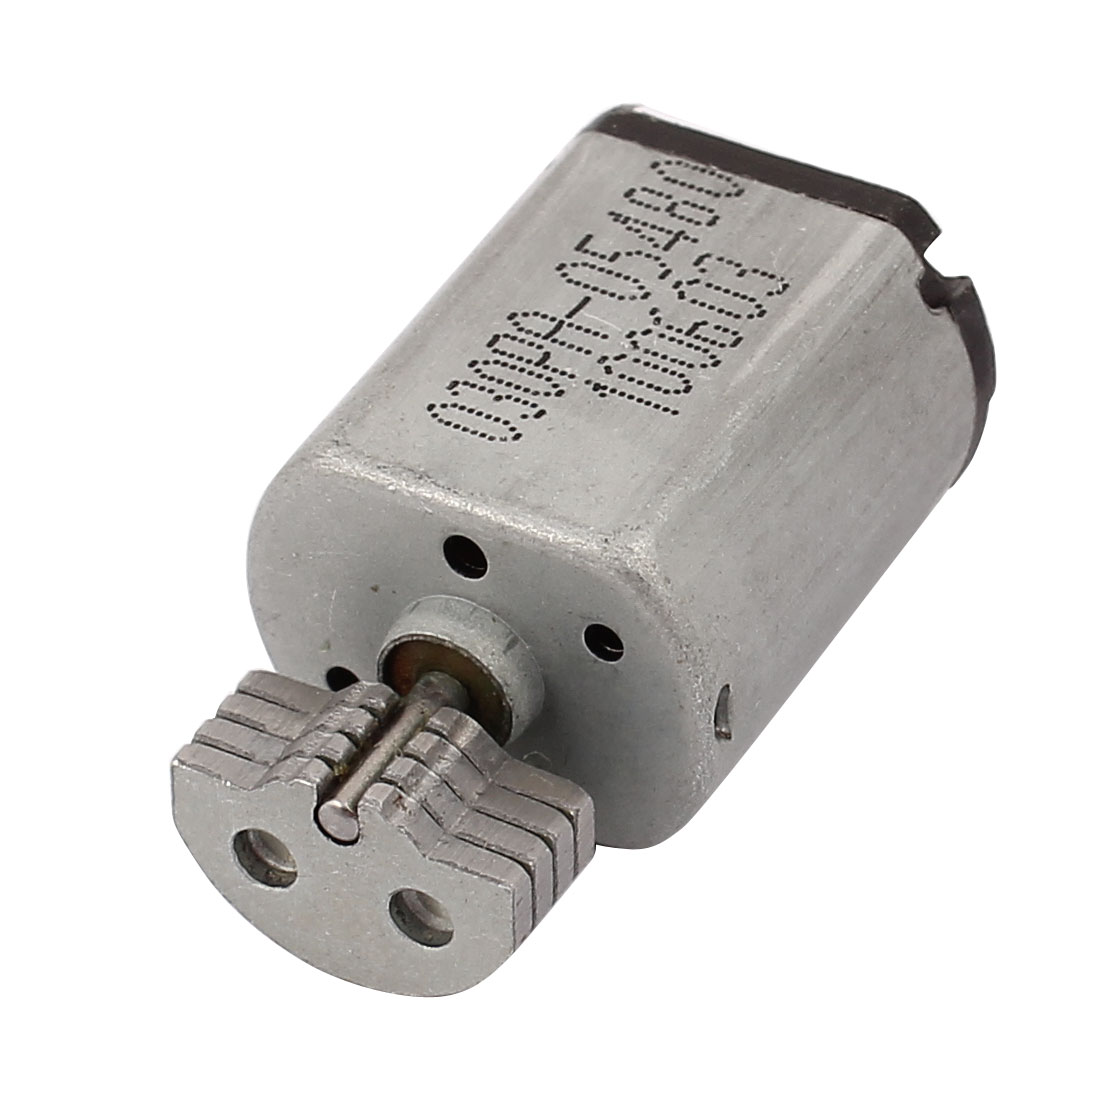 DC 3.7V 63000RPM Micro High Torque DC Motor f Remote Control Air Helicopter